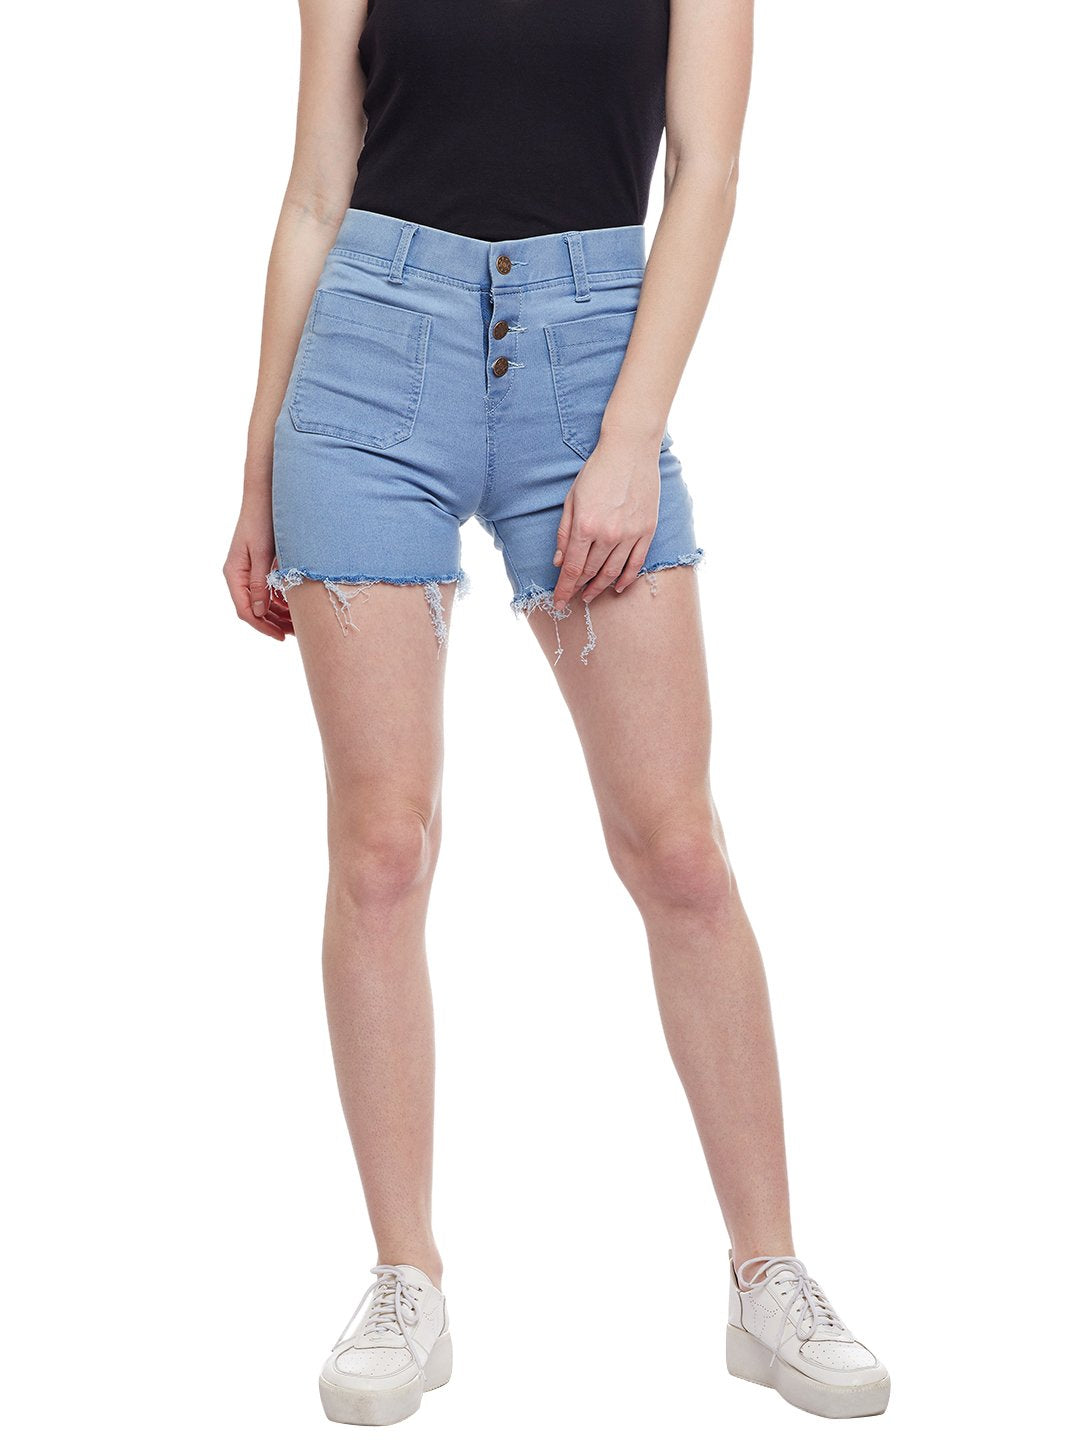 Castle Ice Blue Cut-Offs Denim Shorts